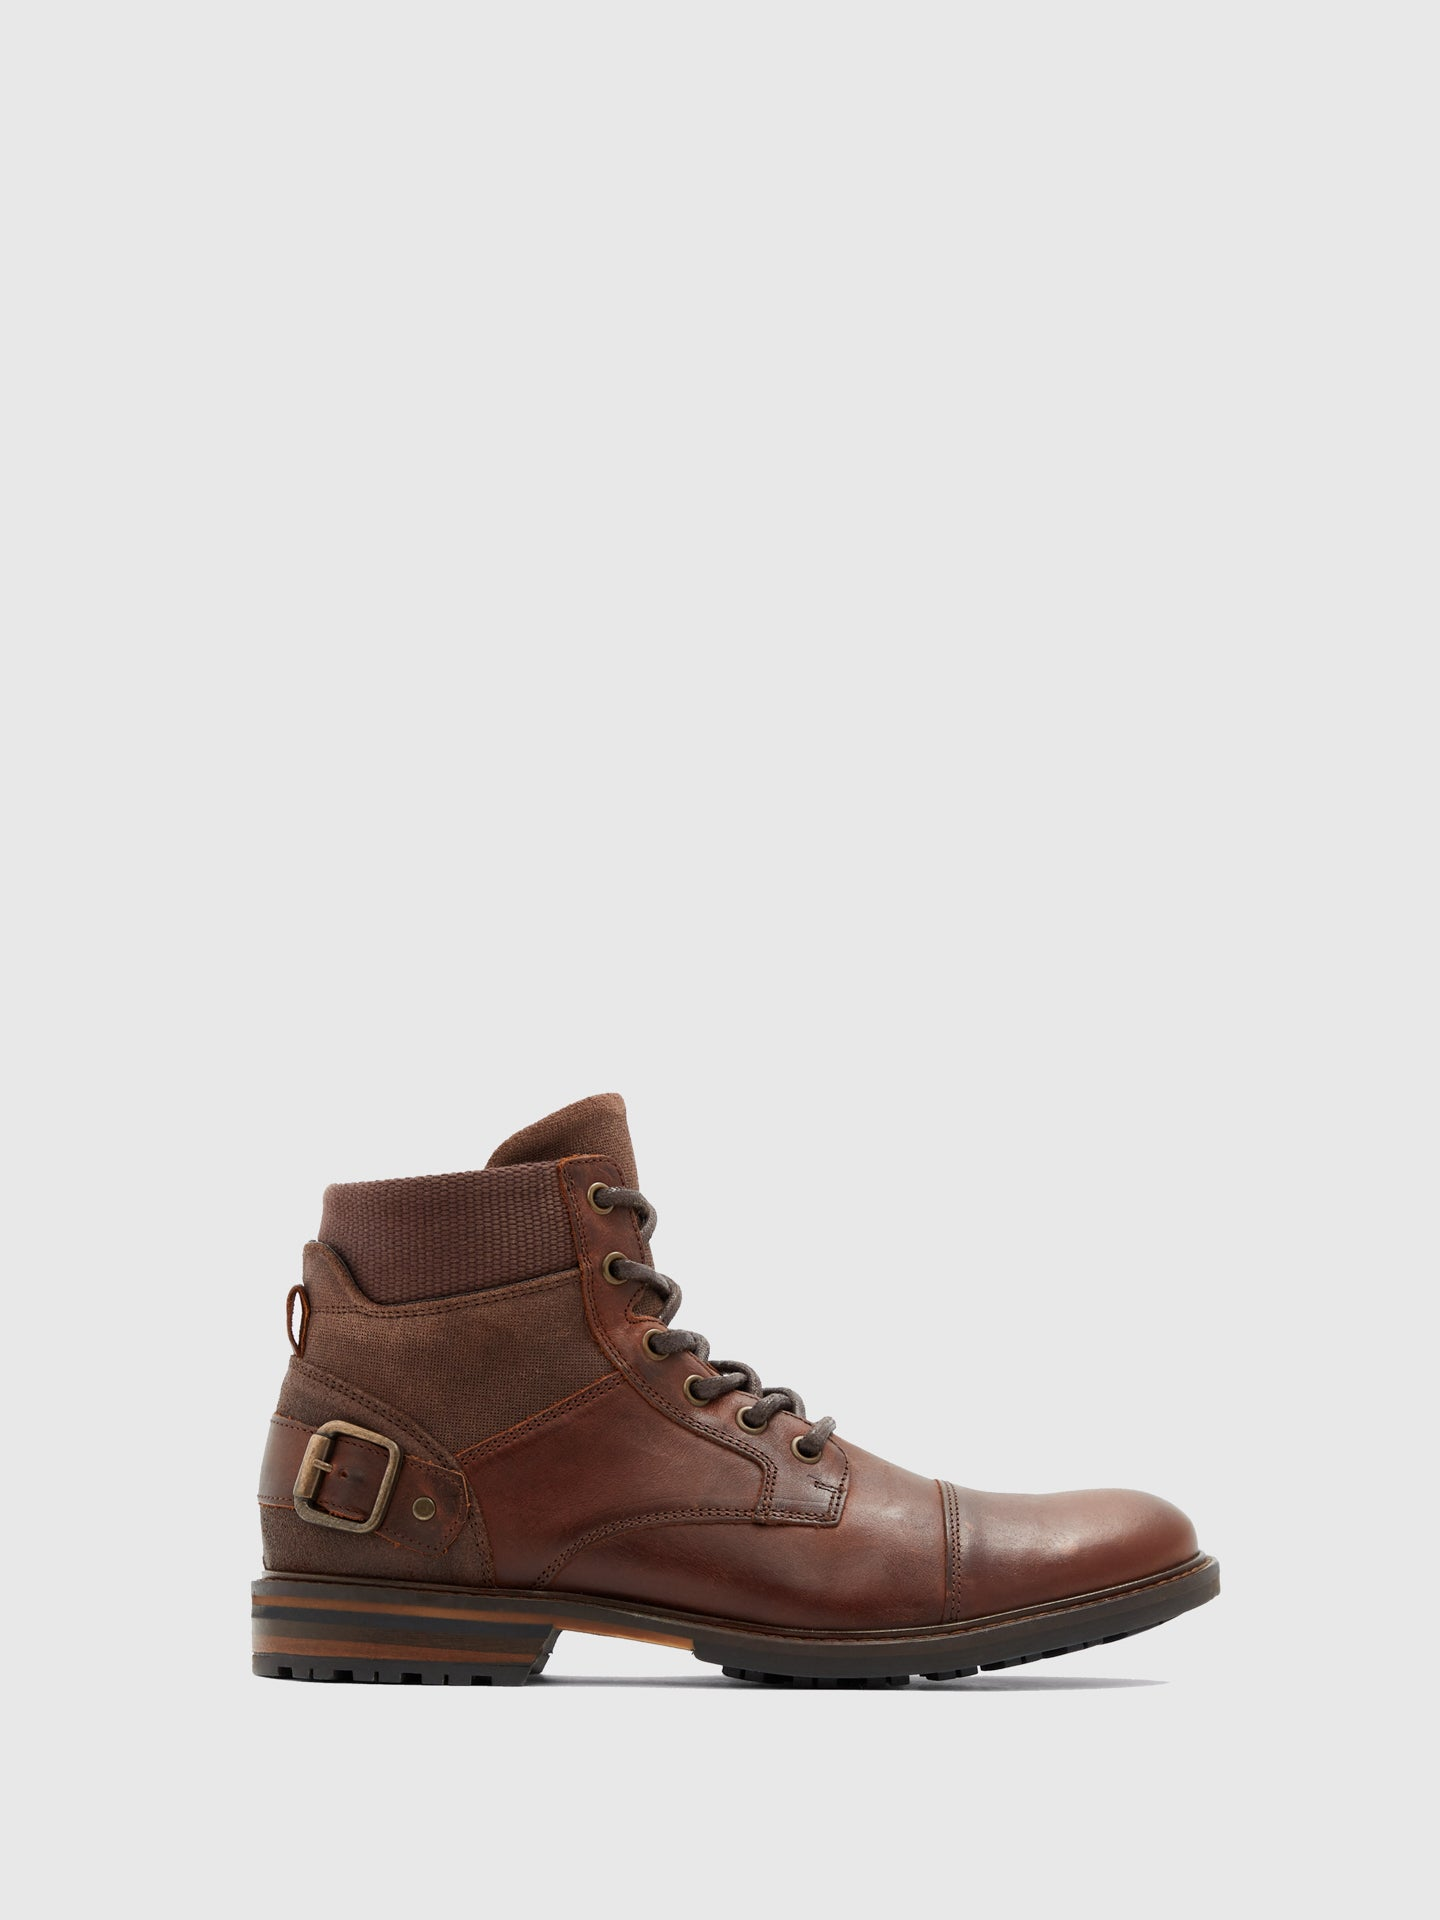 Aldo Chocolate Lace-up Boots